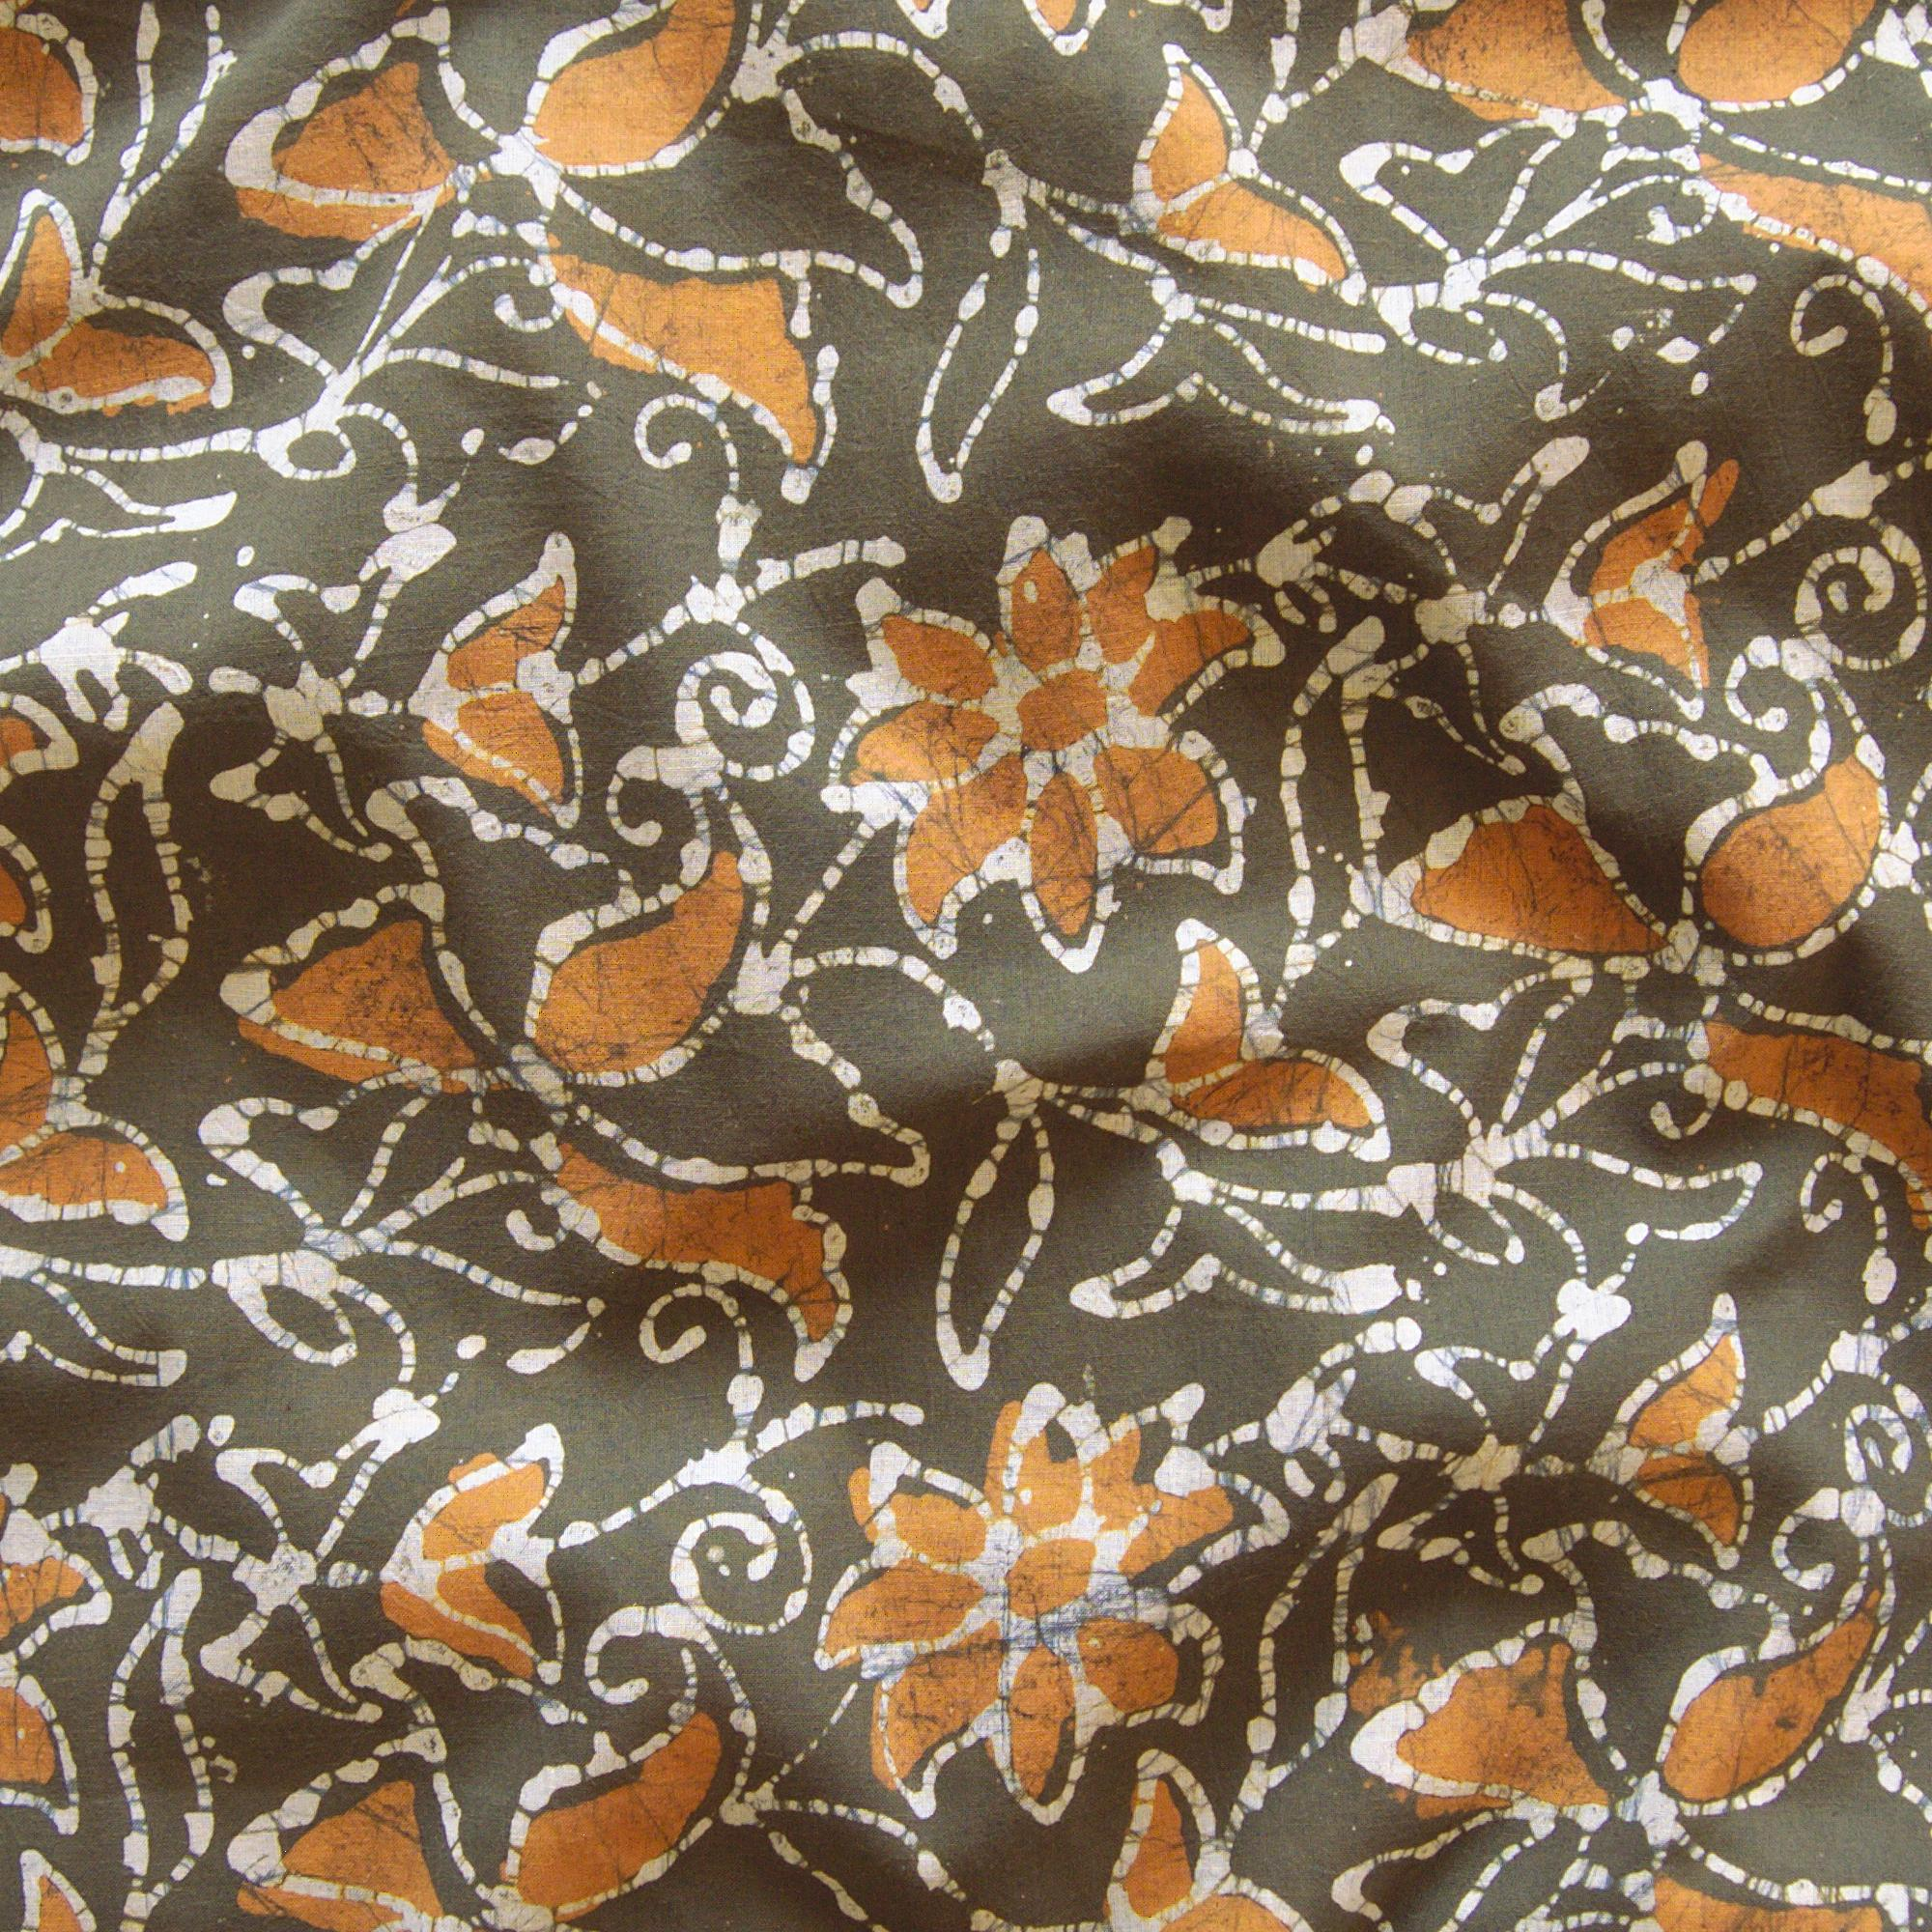 1 - SHA17 - 100% Block-Printed Batik Cotton Fabric From India - Clematis Motif - Contrast - Live